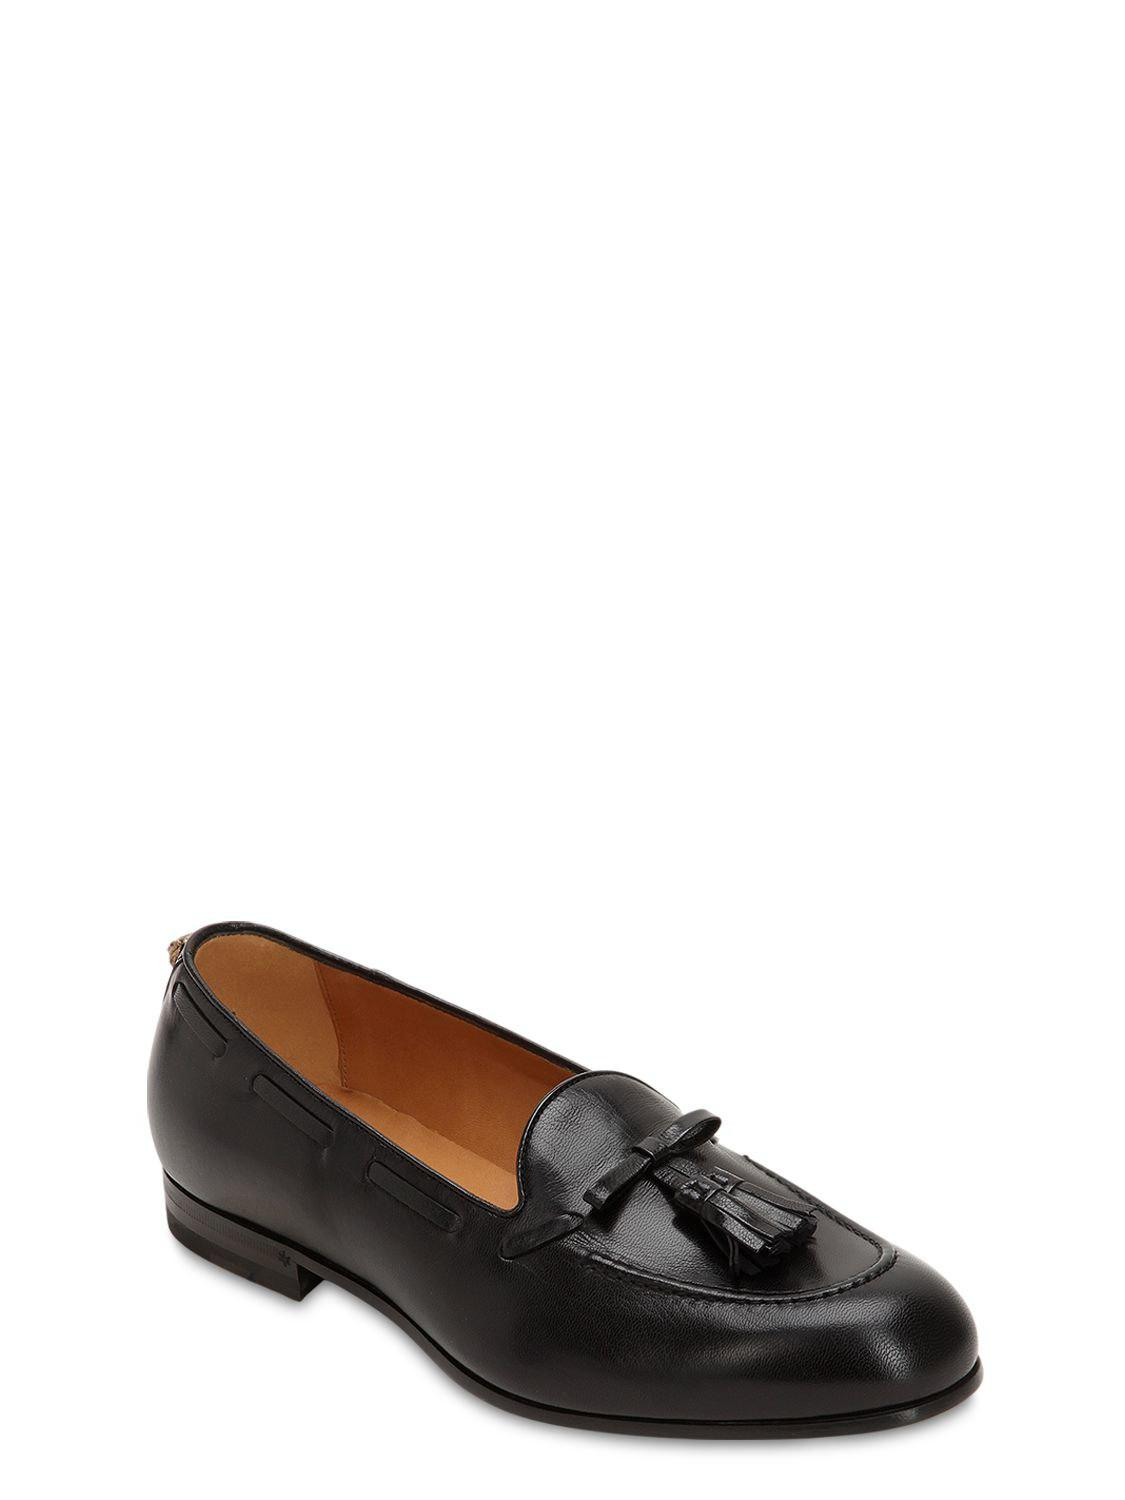 796783d4f65 Gucci Loomis Tassel Leather Loafers in Black for Men - Lyst